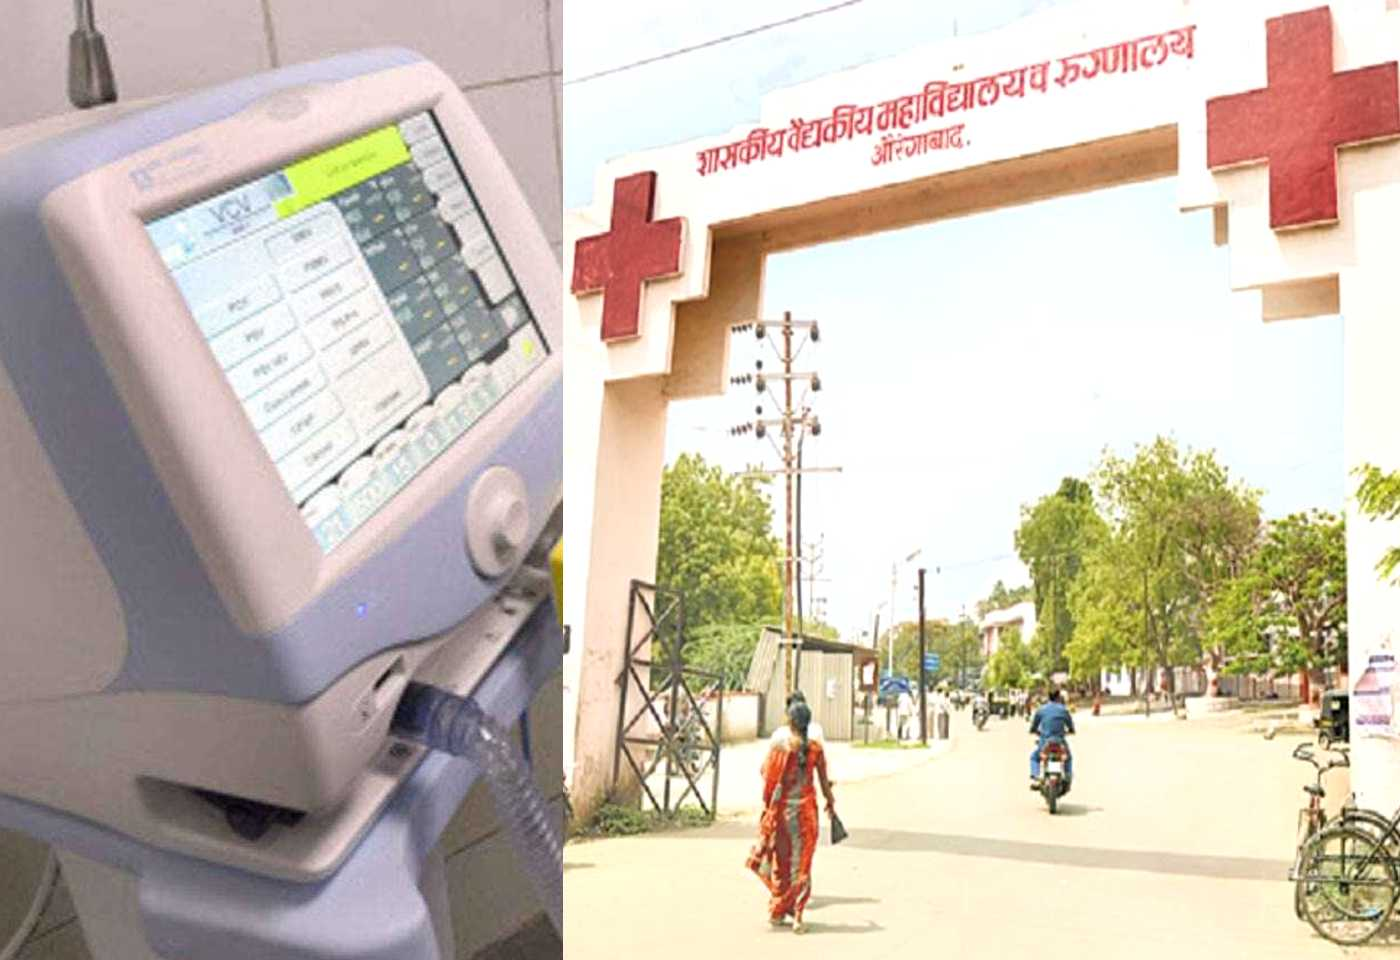 Update on Ventilators Installed in Aurangabad, Ad-hoc Installation without guidance from Manufacturer in Hospitals